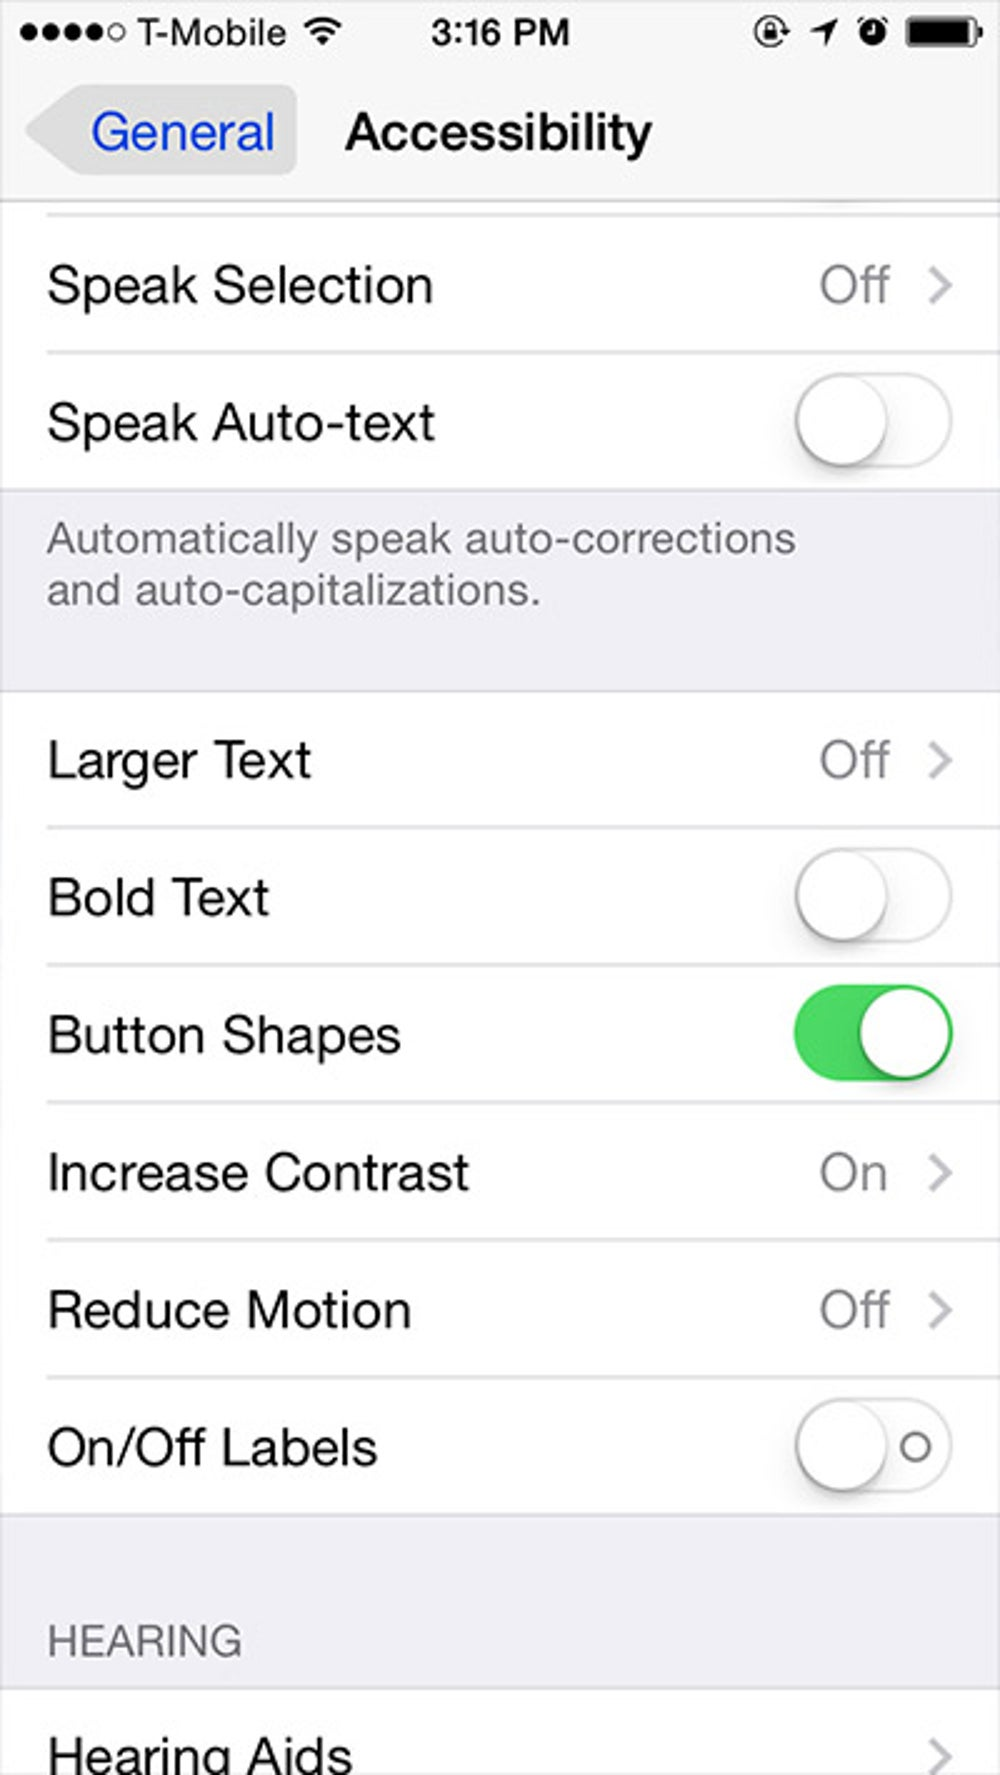 If their location wasn't clear before, there's now an option to put shading around text on buttons.